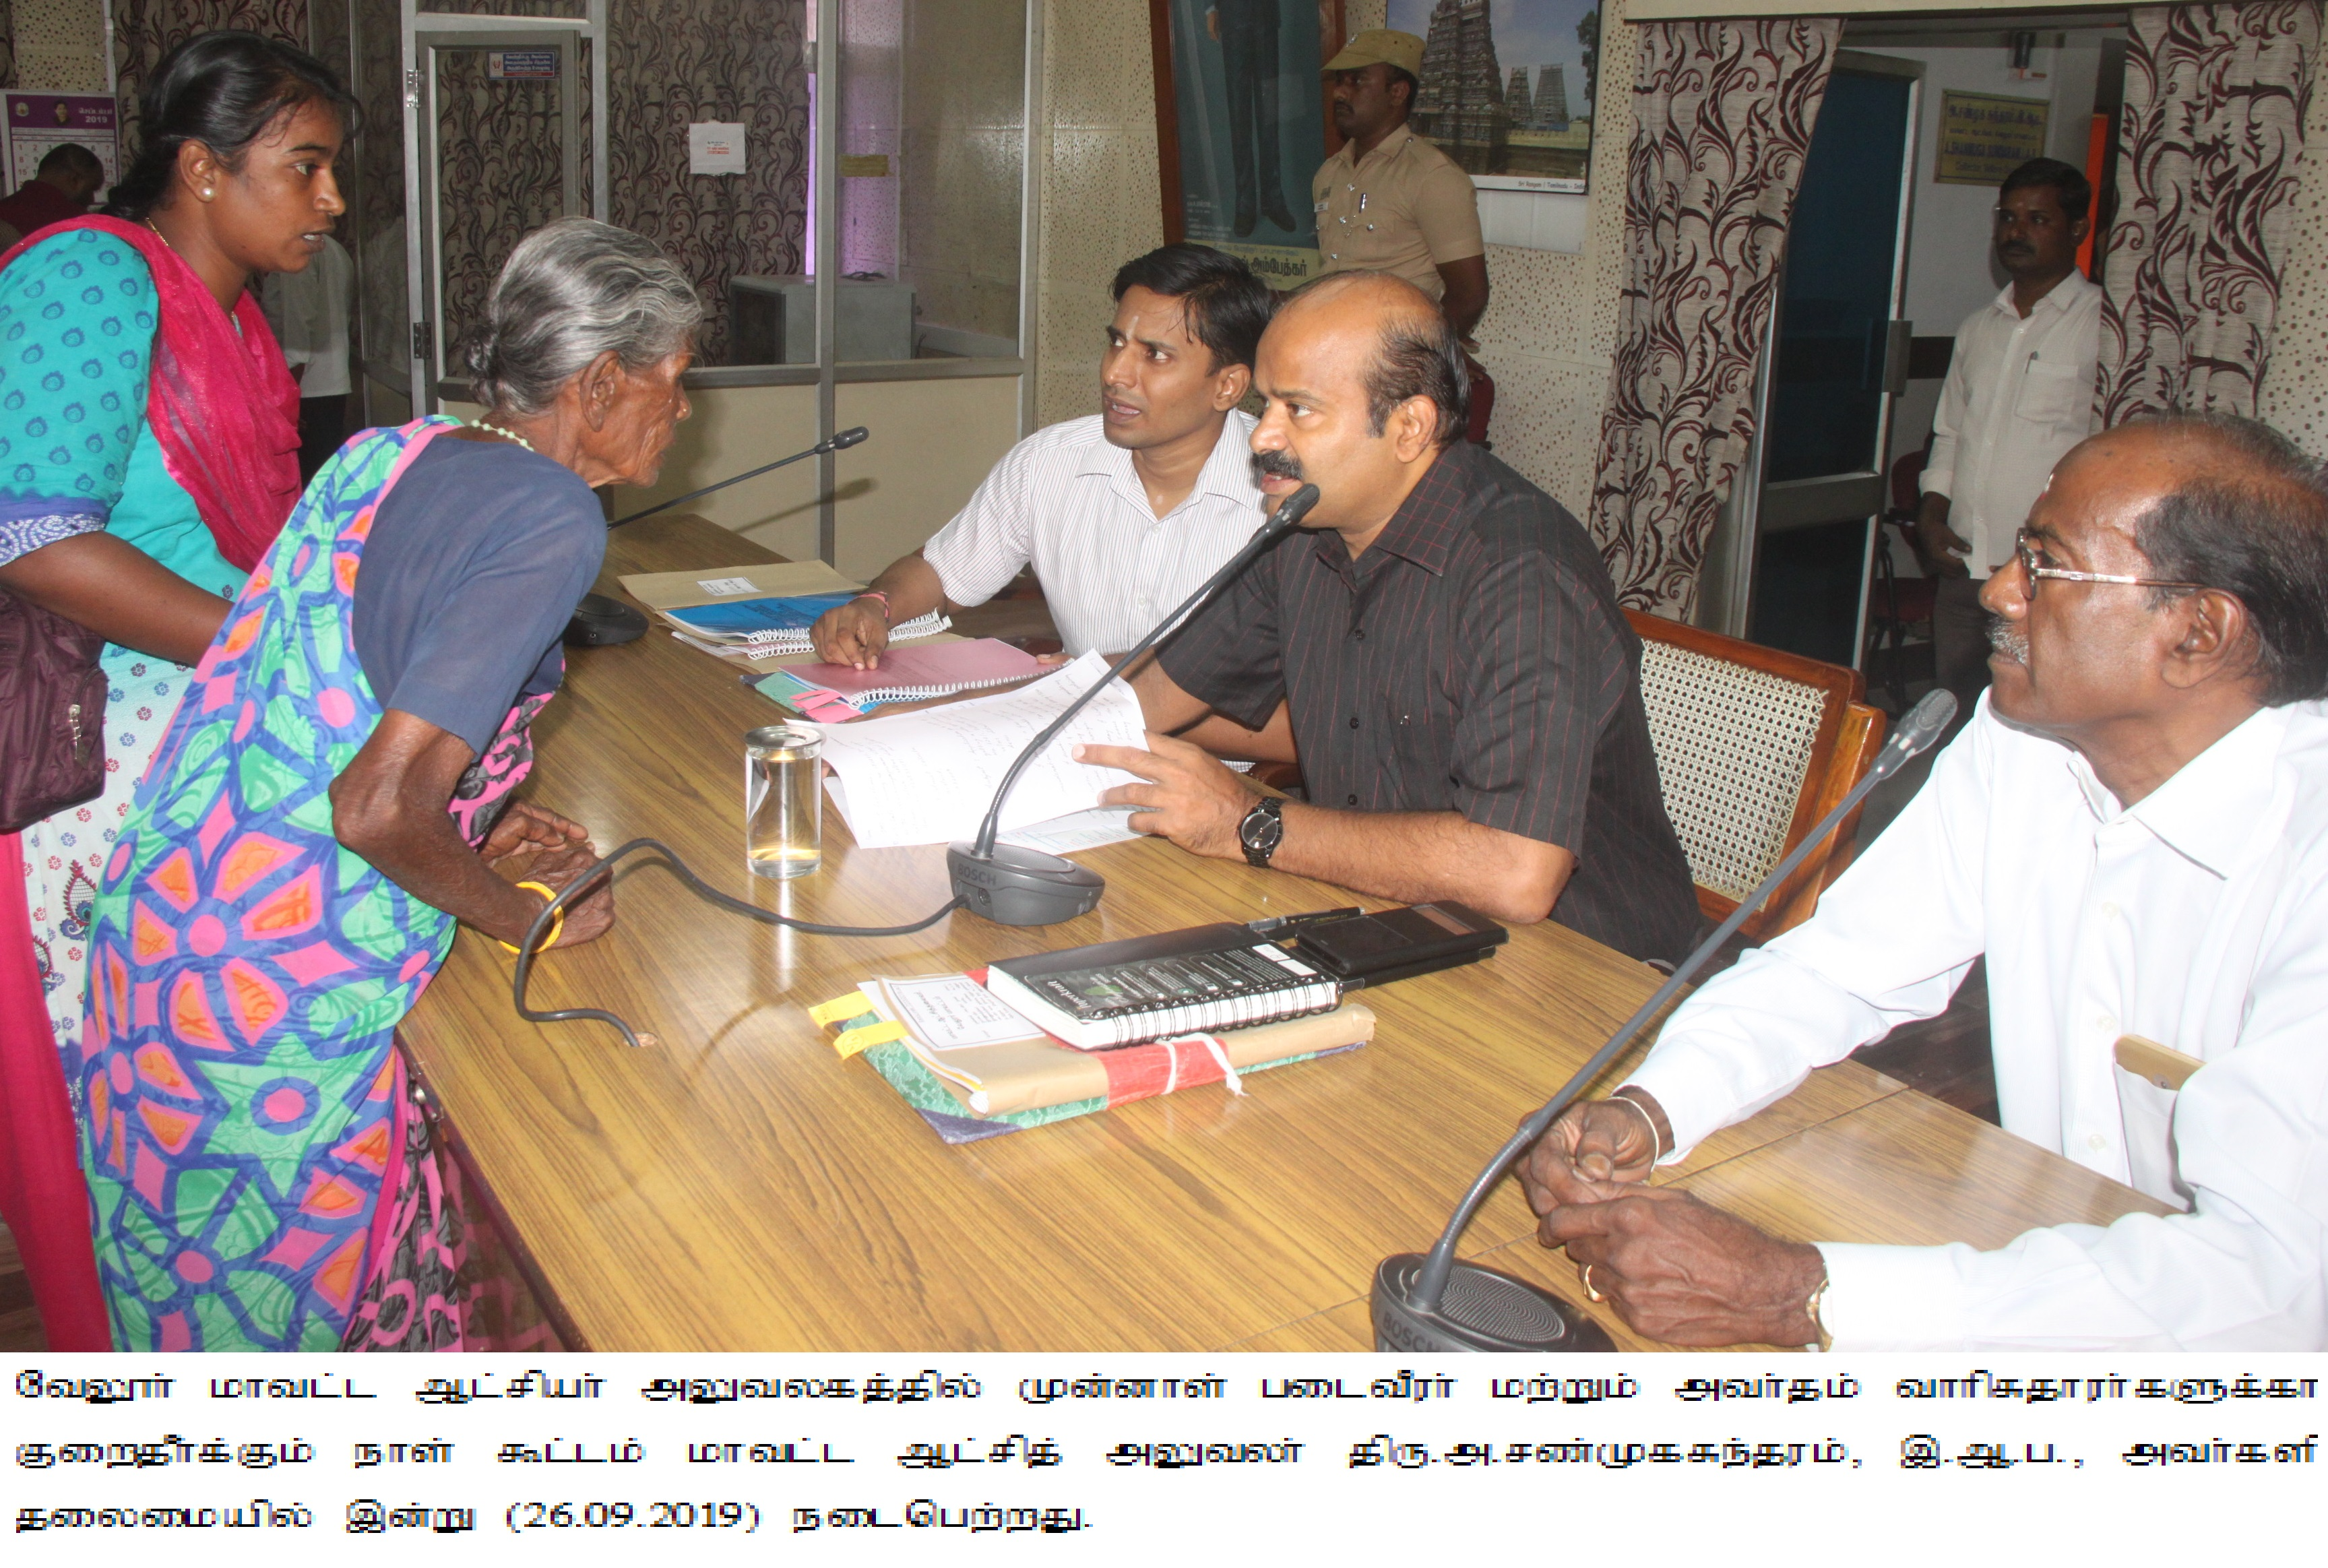 Ex-Service men and their family members grievance redressal meeting 26/09/2019